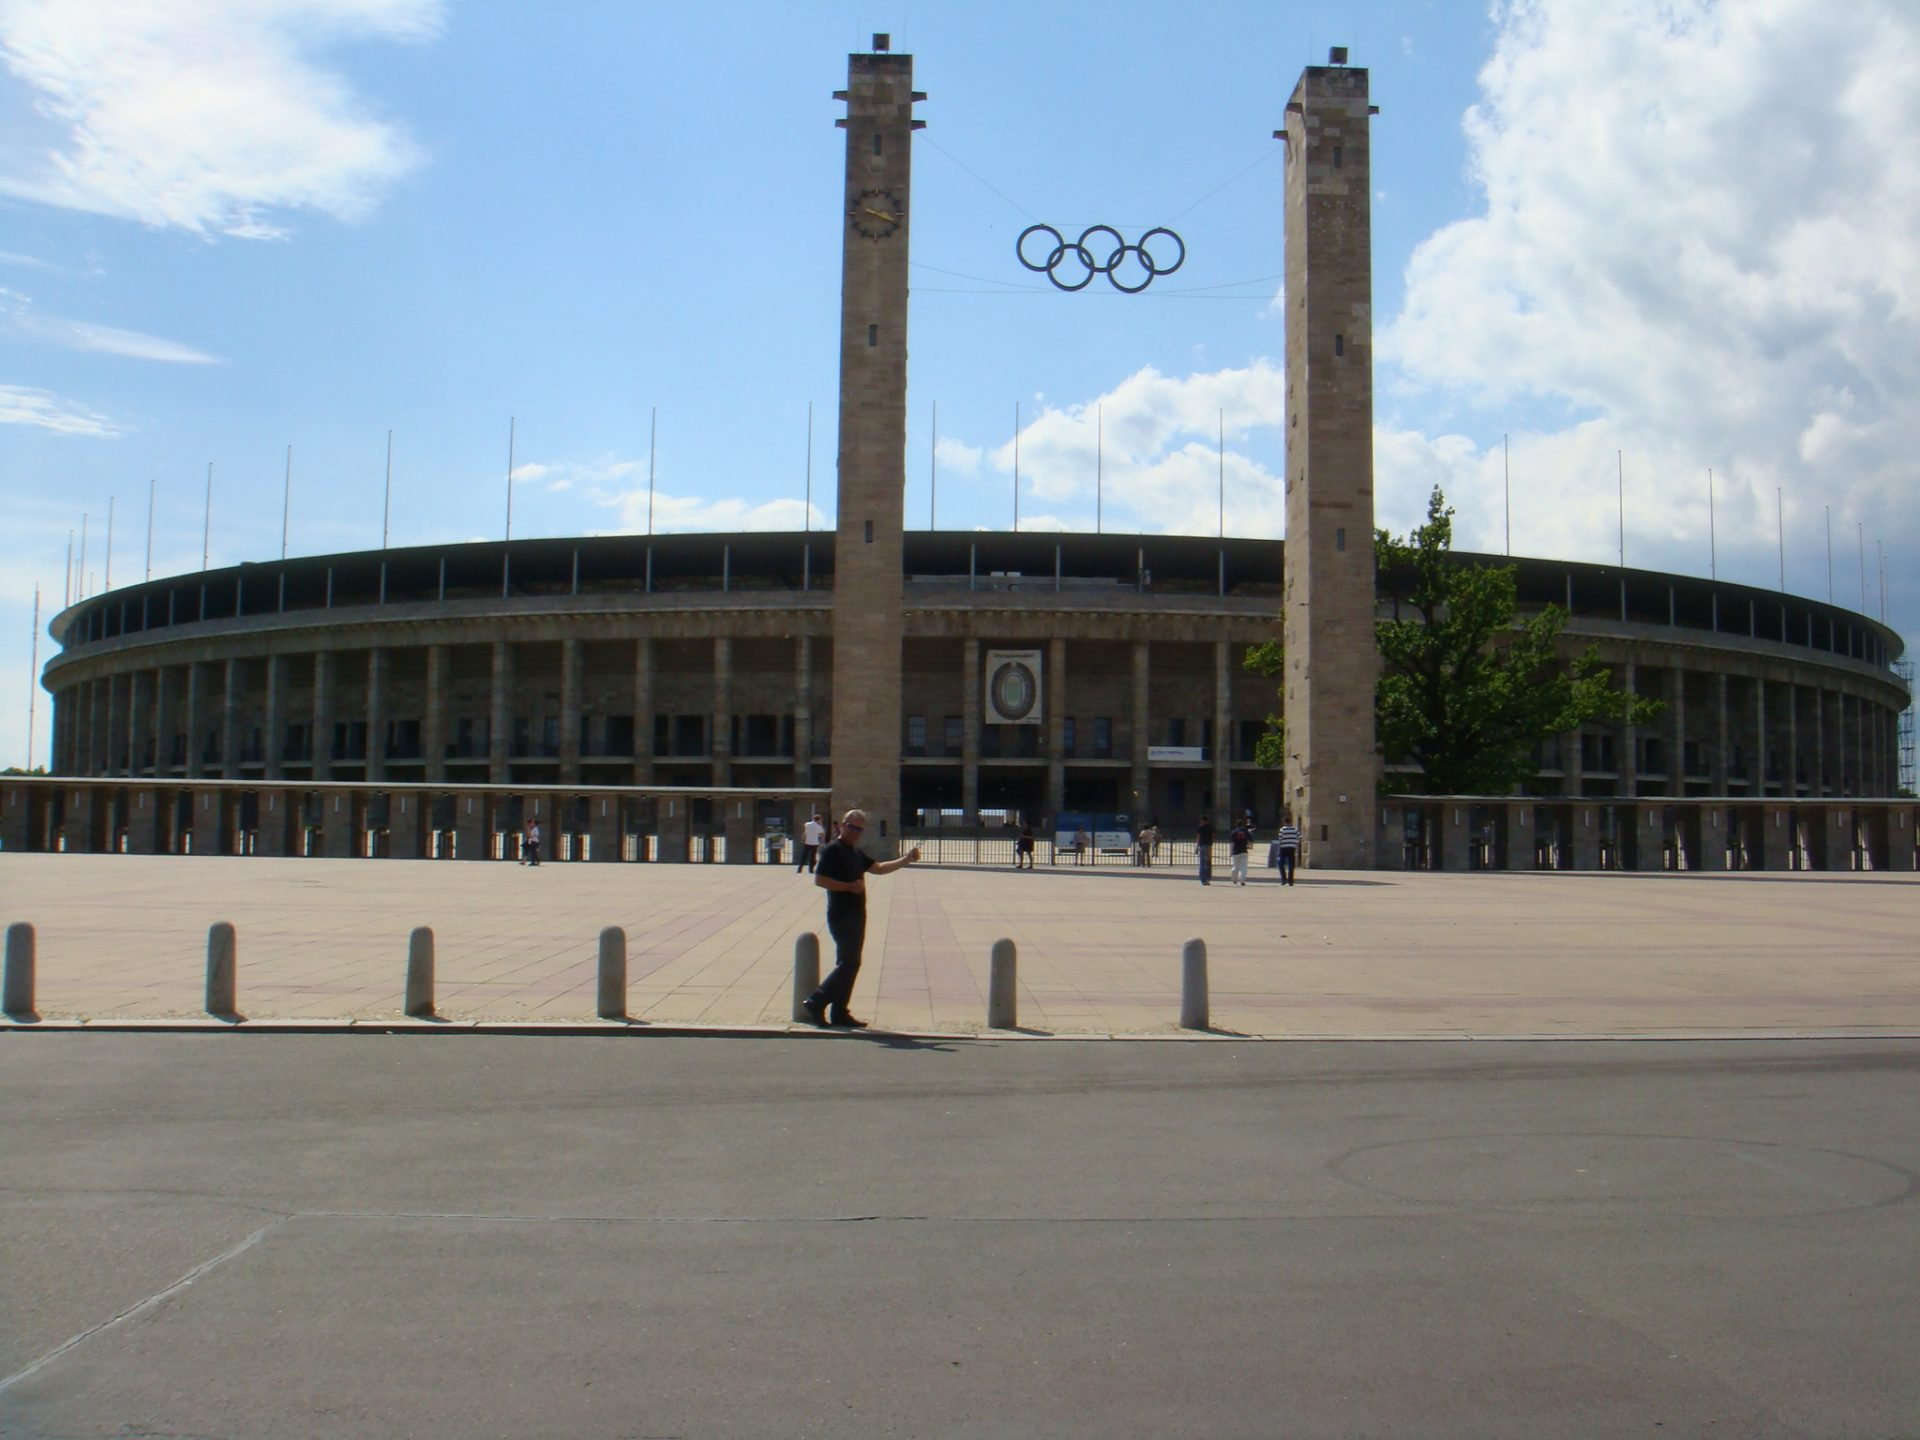 The 1936 Olympic Stadium, an example of Fascist architecture.  Jesse Owens ran here while Hitler watched